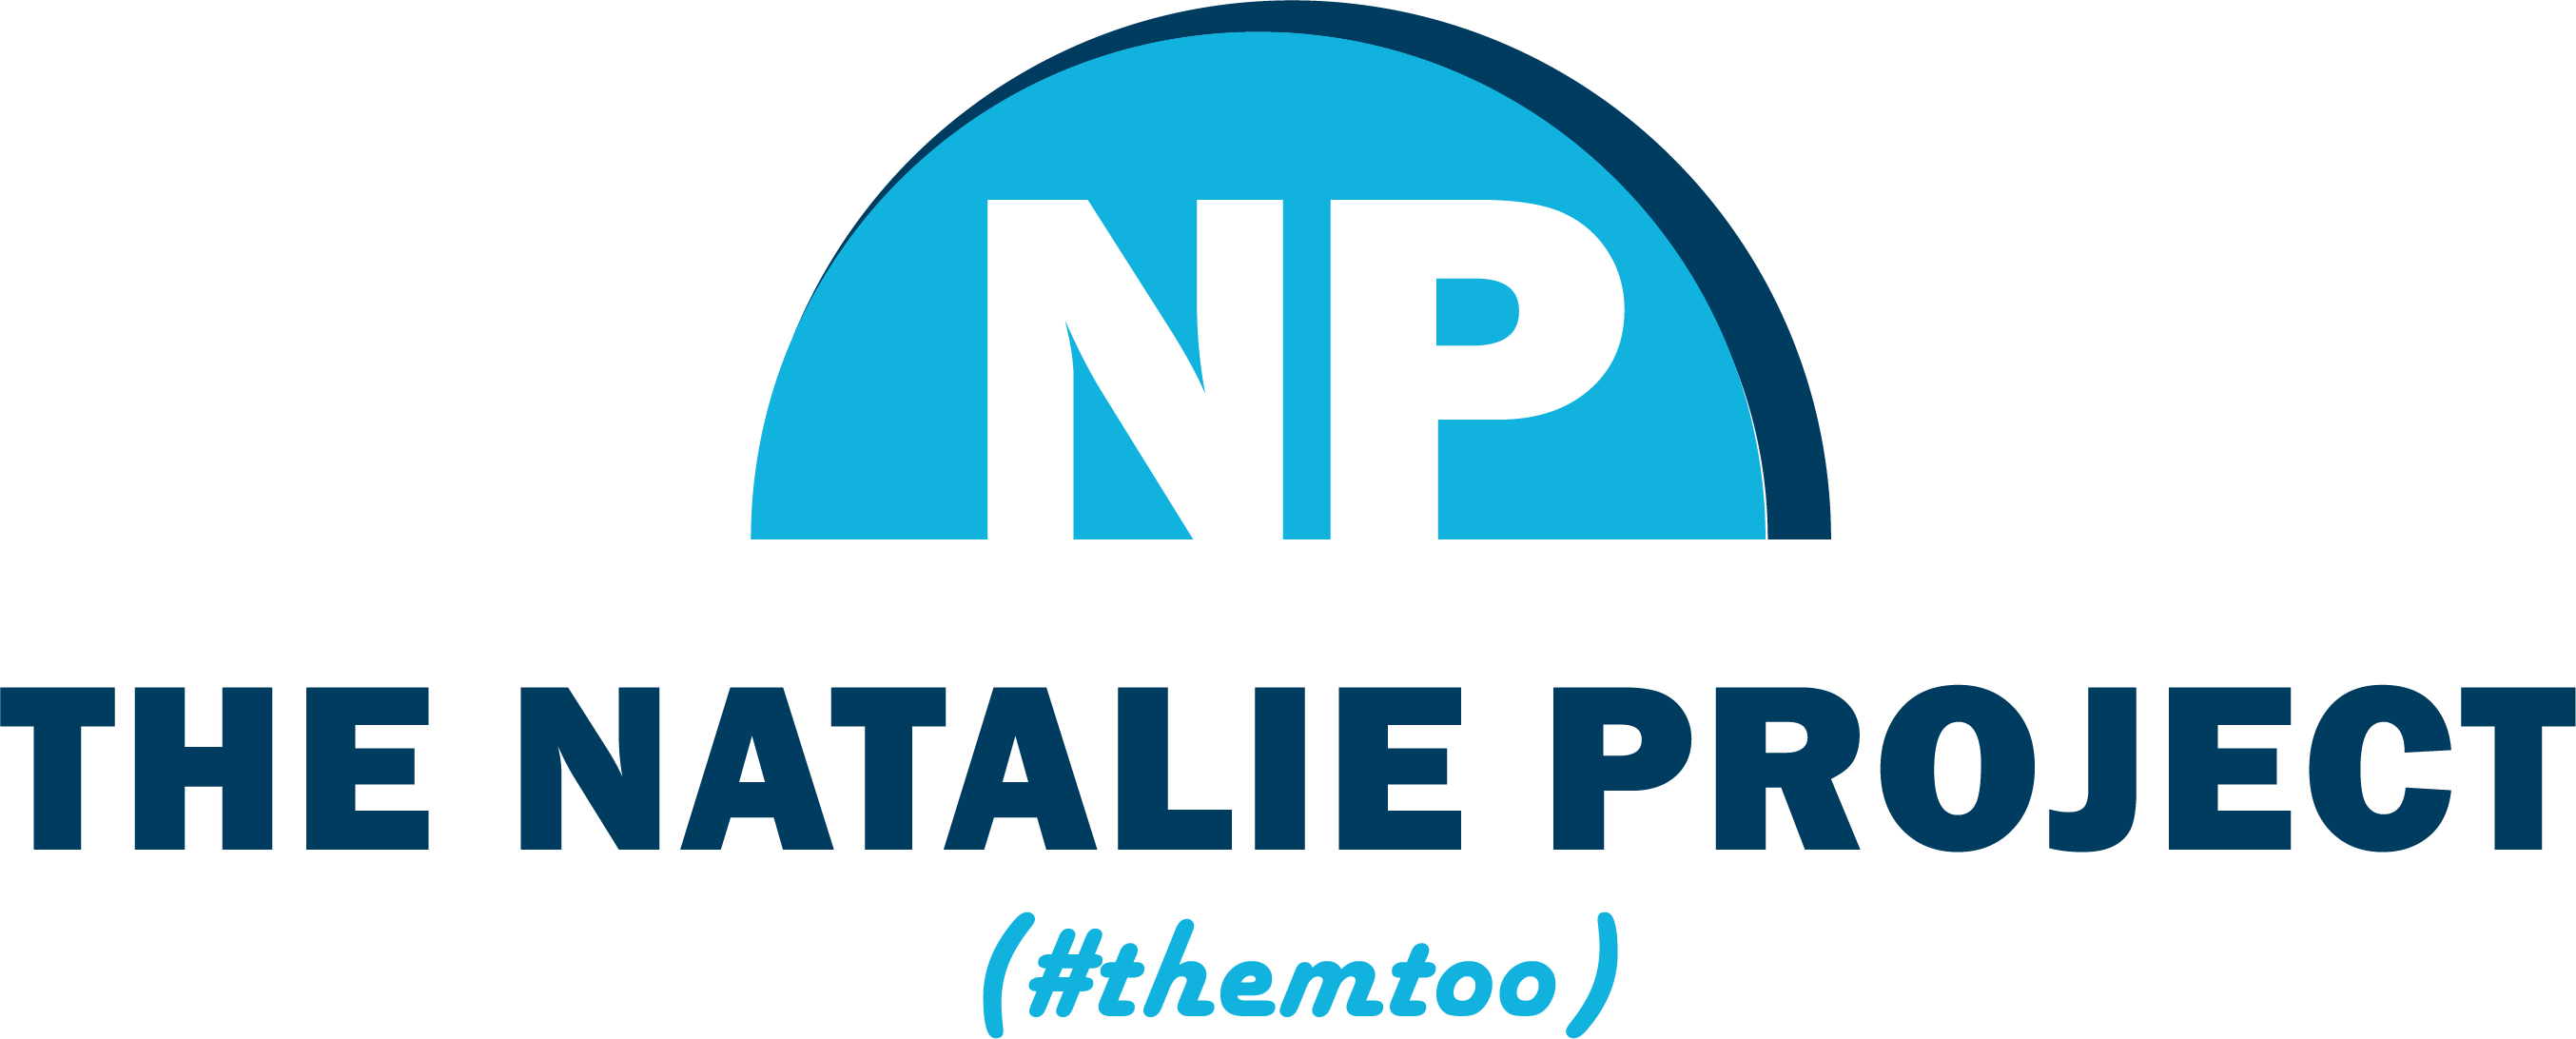 The Natalie Project (#themtoo)